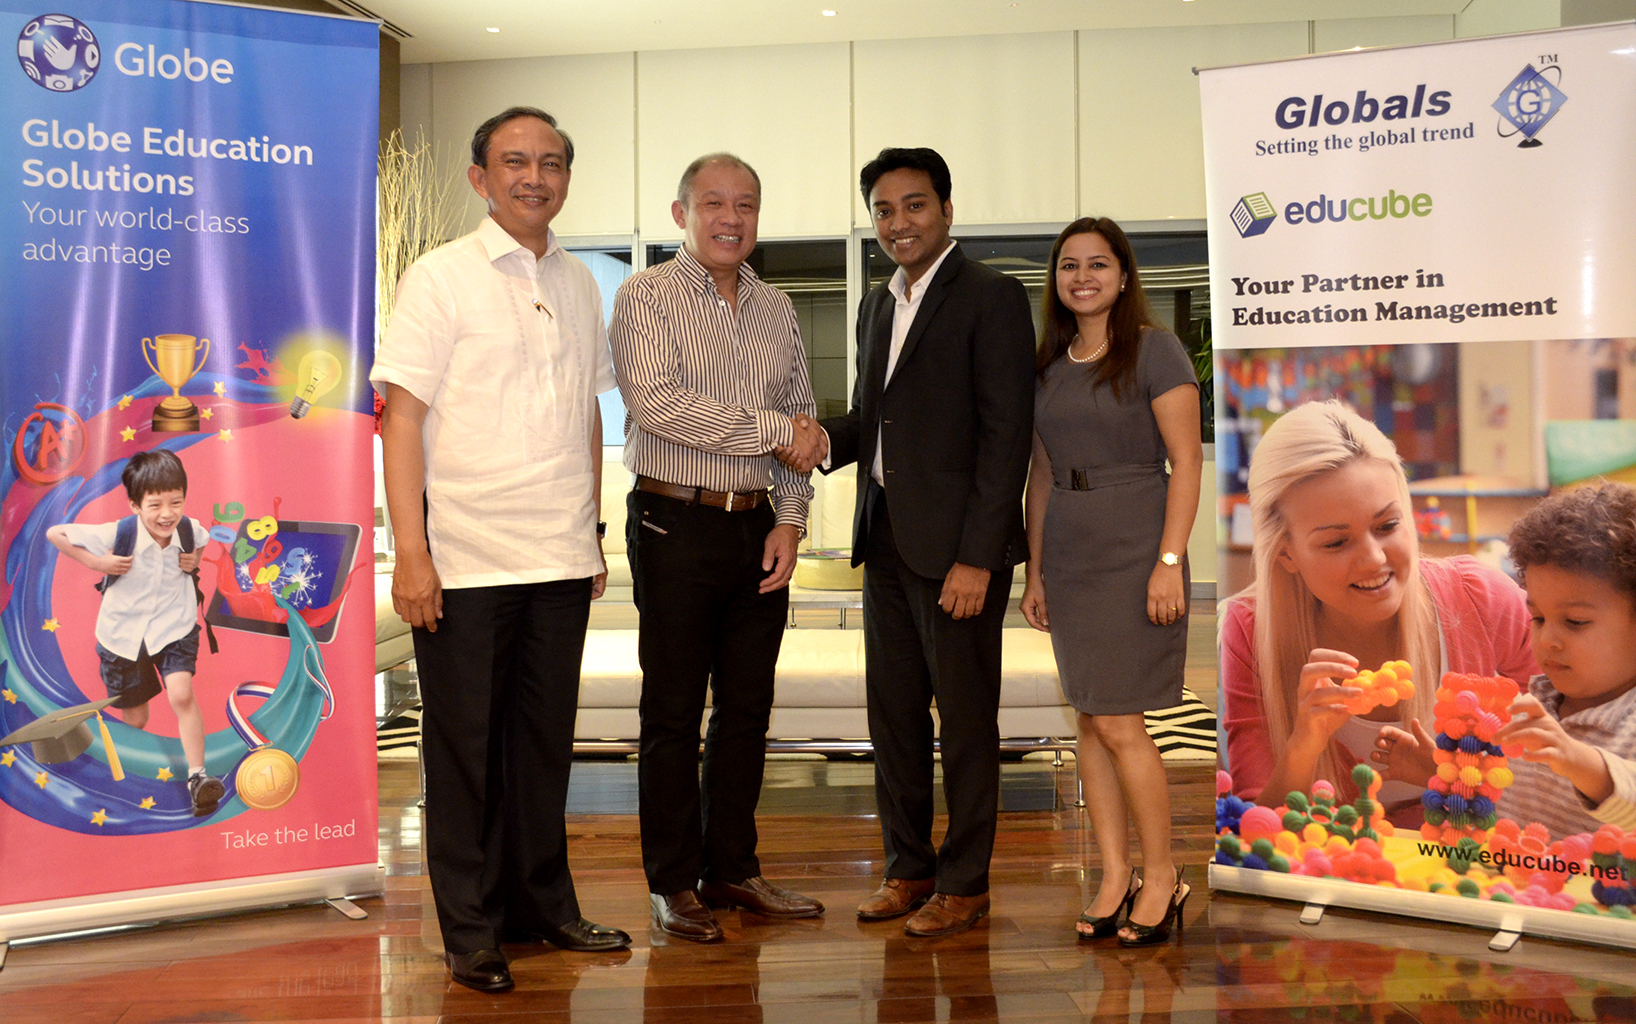 Press Release: Globe sparks revolution in PH education with new cloud-based software